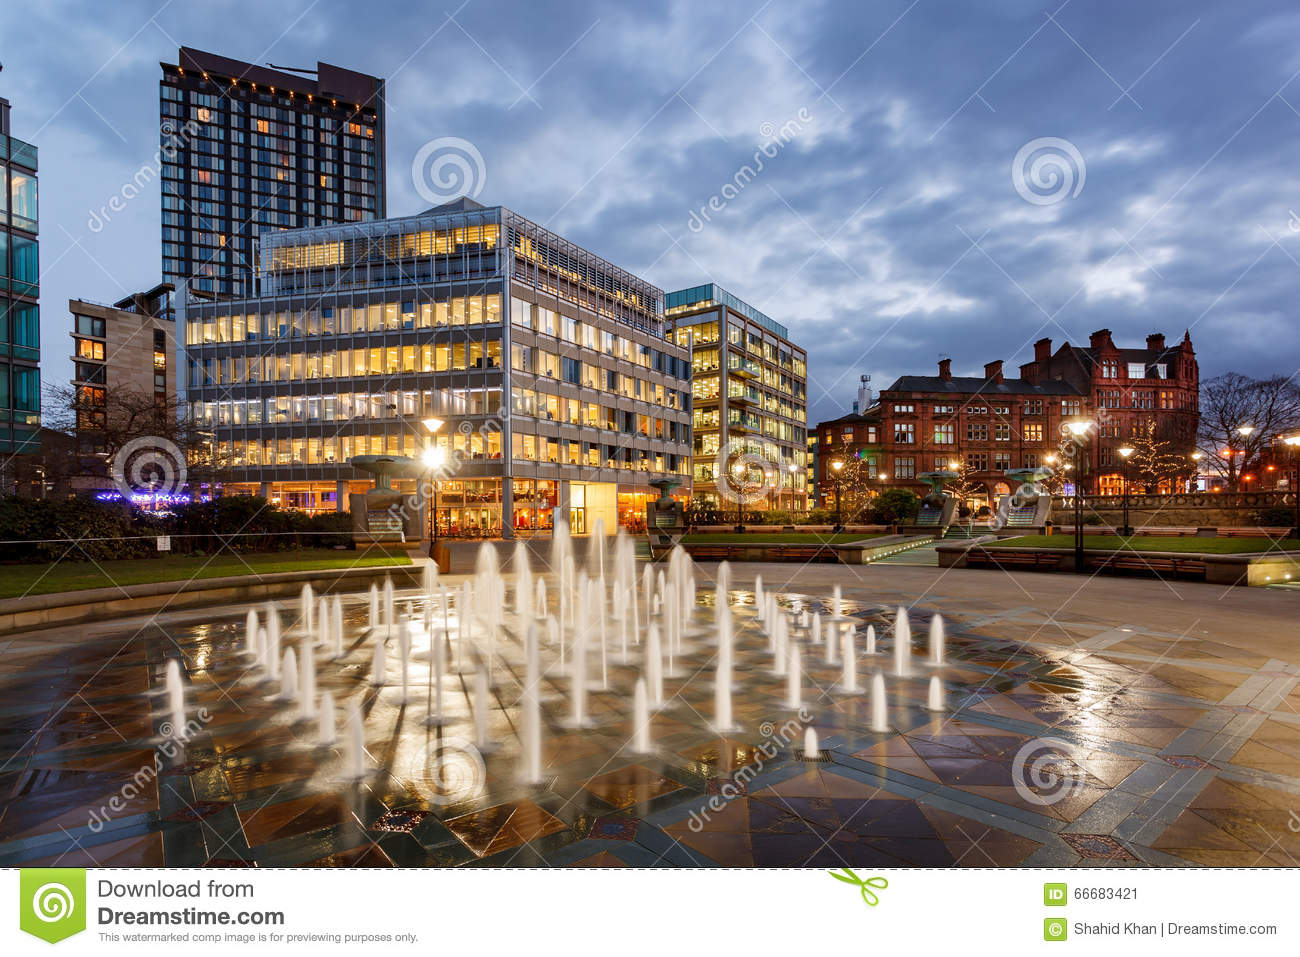 sheffield england stock image image of centre fountain 66683421. Black Bedroom Furniture Sets. Home Design Ideas